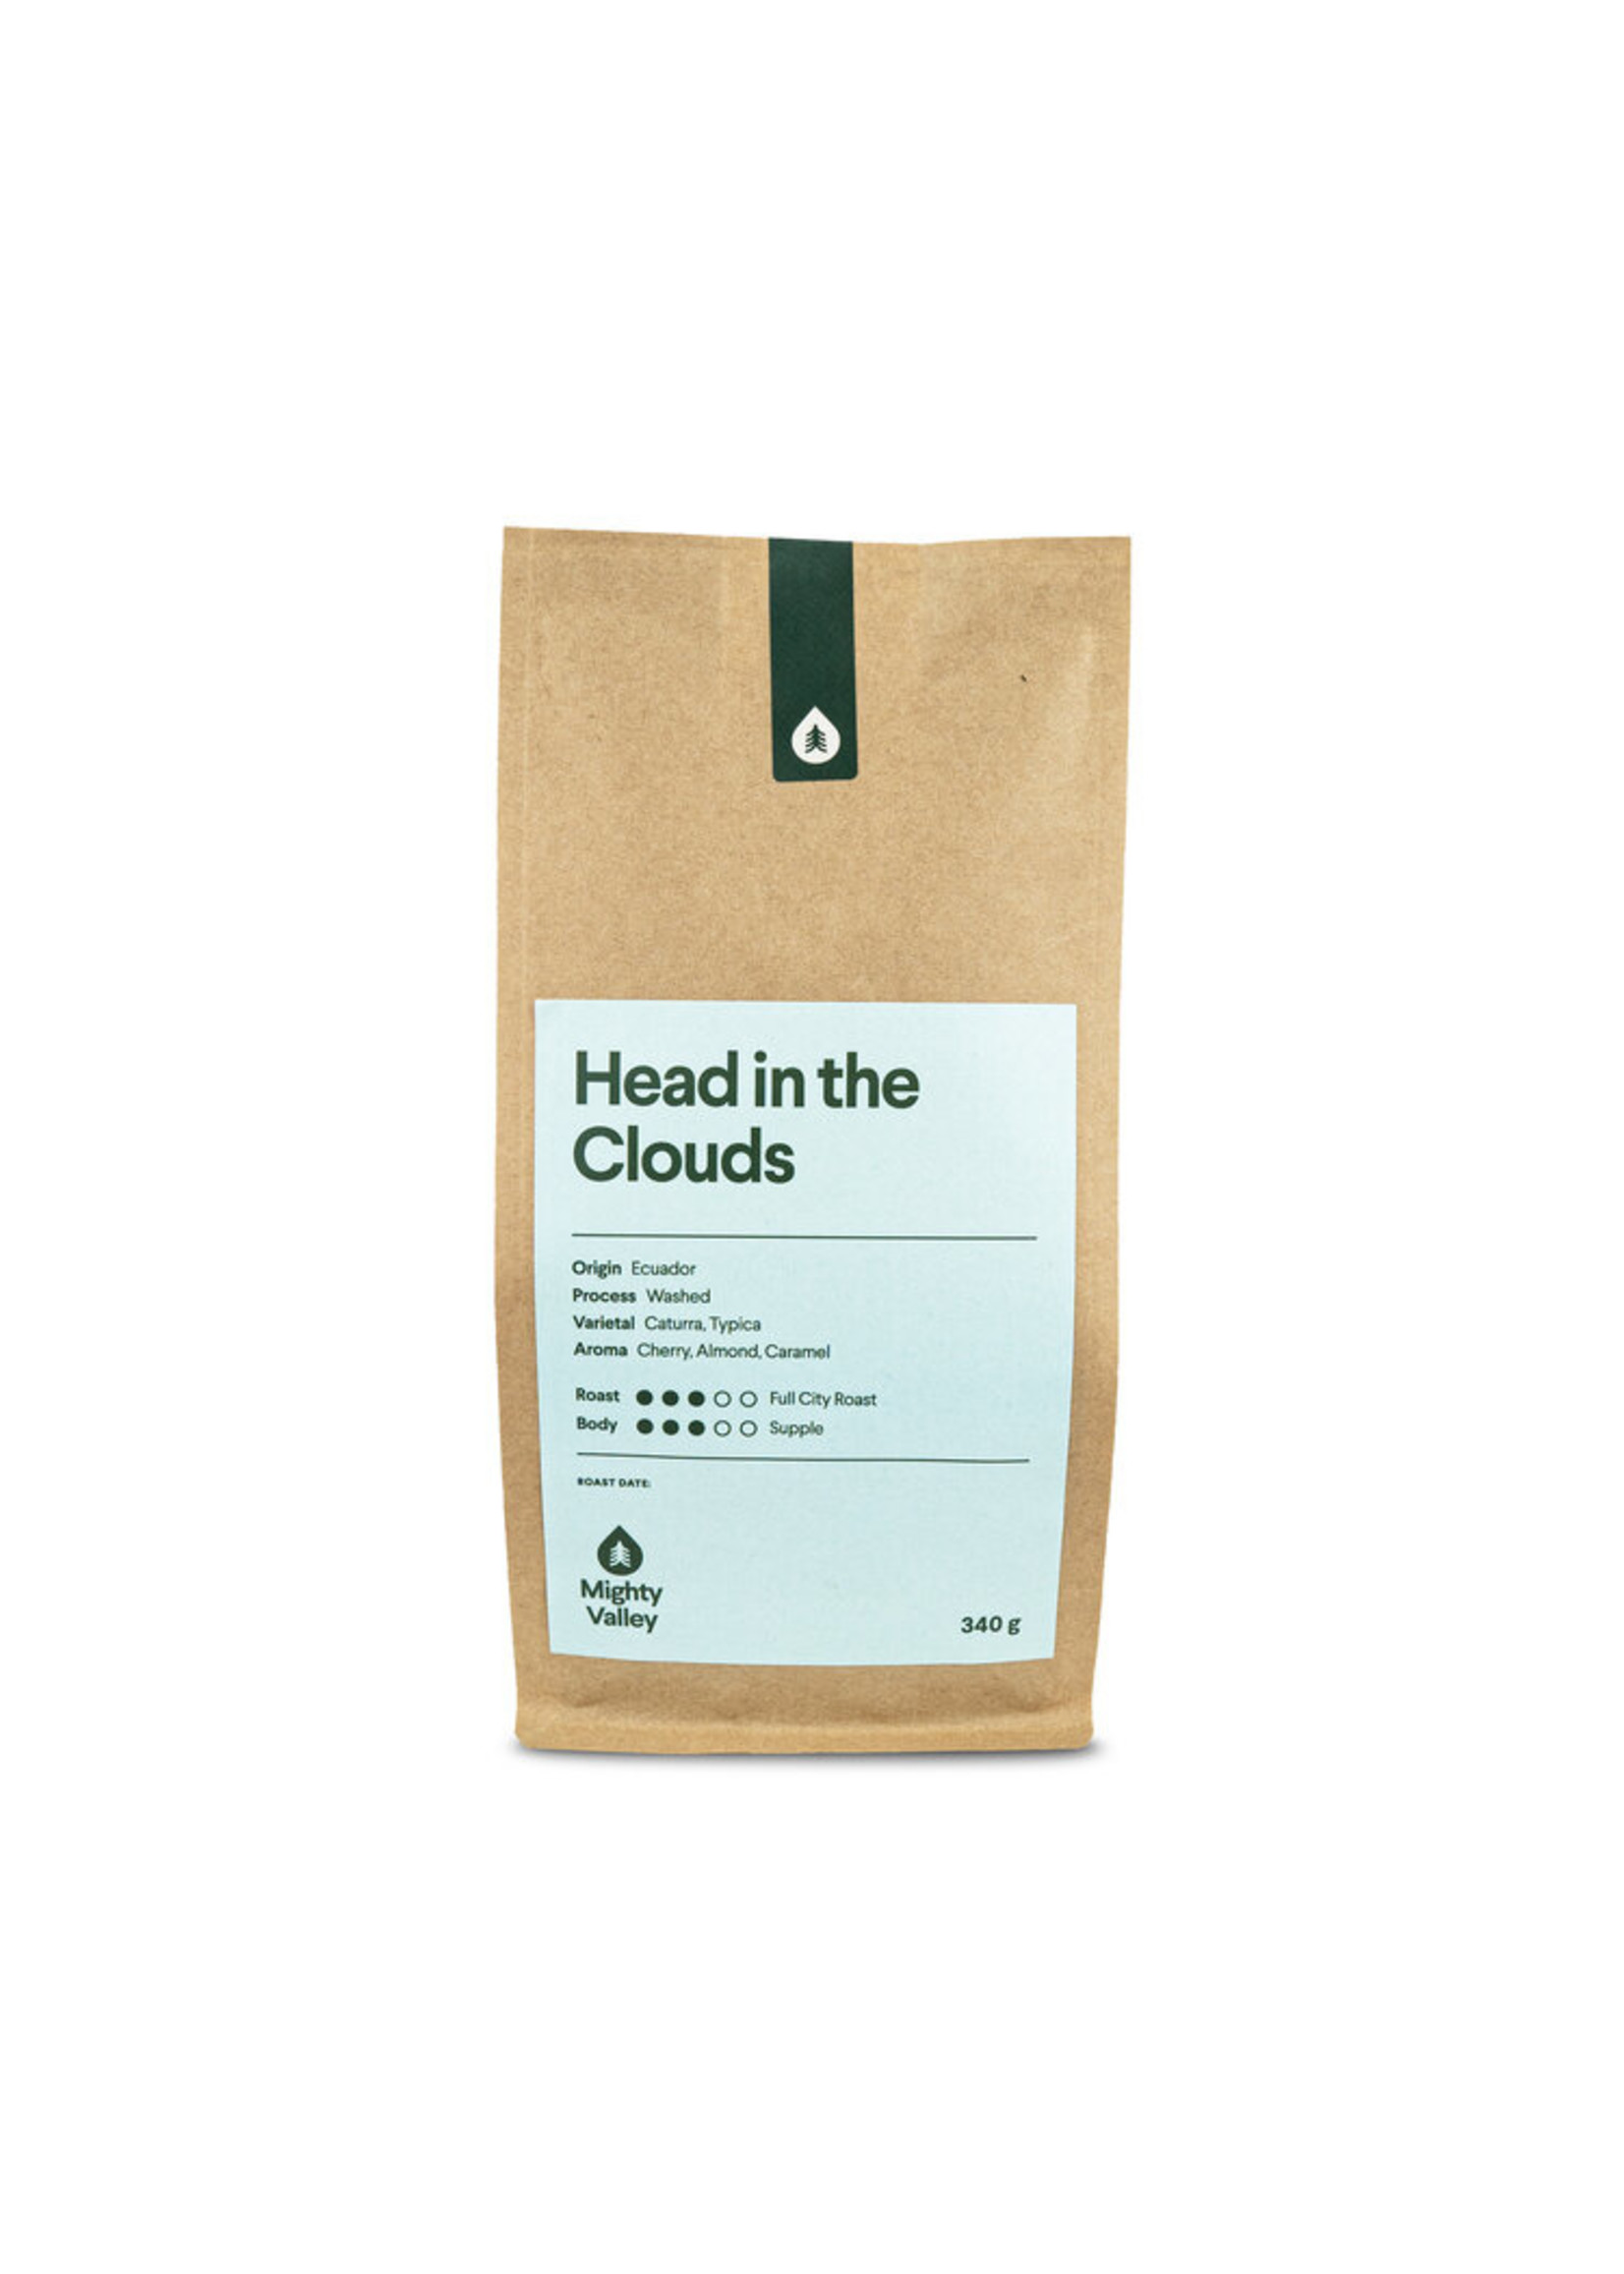 Mighty Valley Mighty Valley Whole Bean Coffee - Head in the Clouds Blend 340g